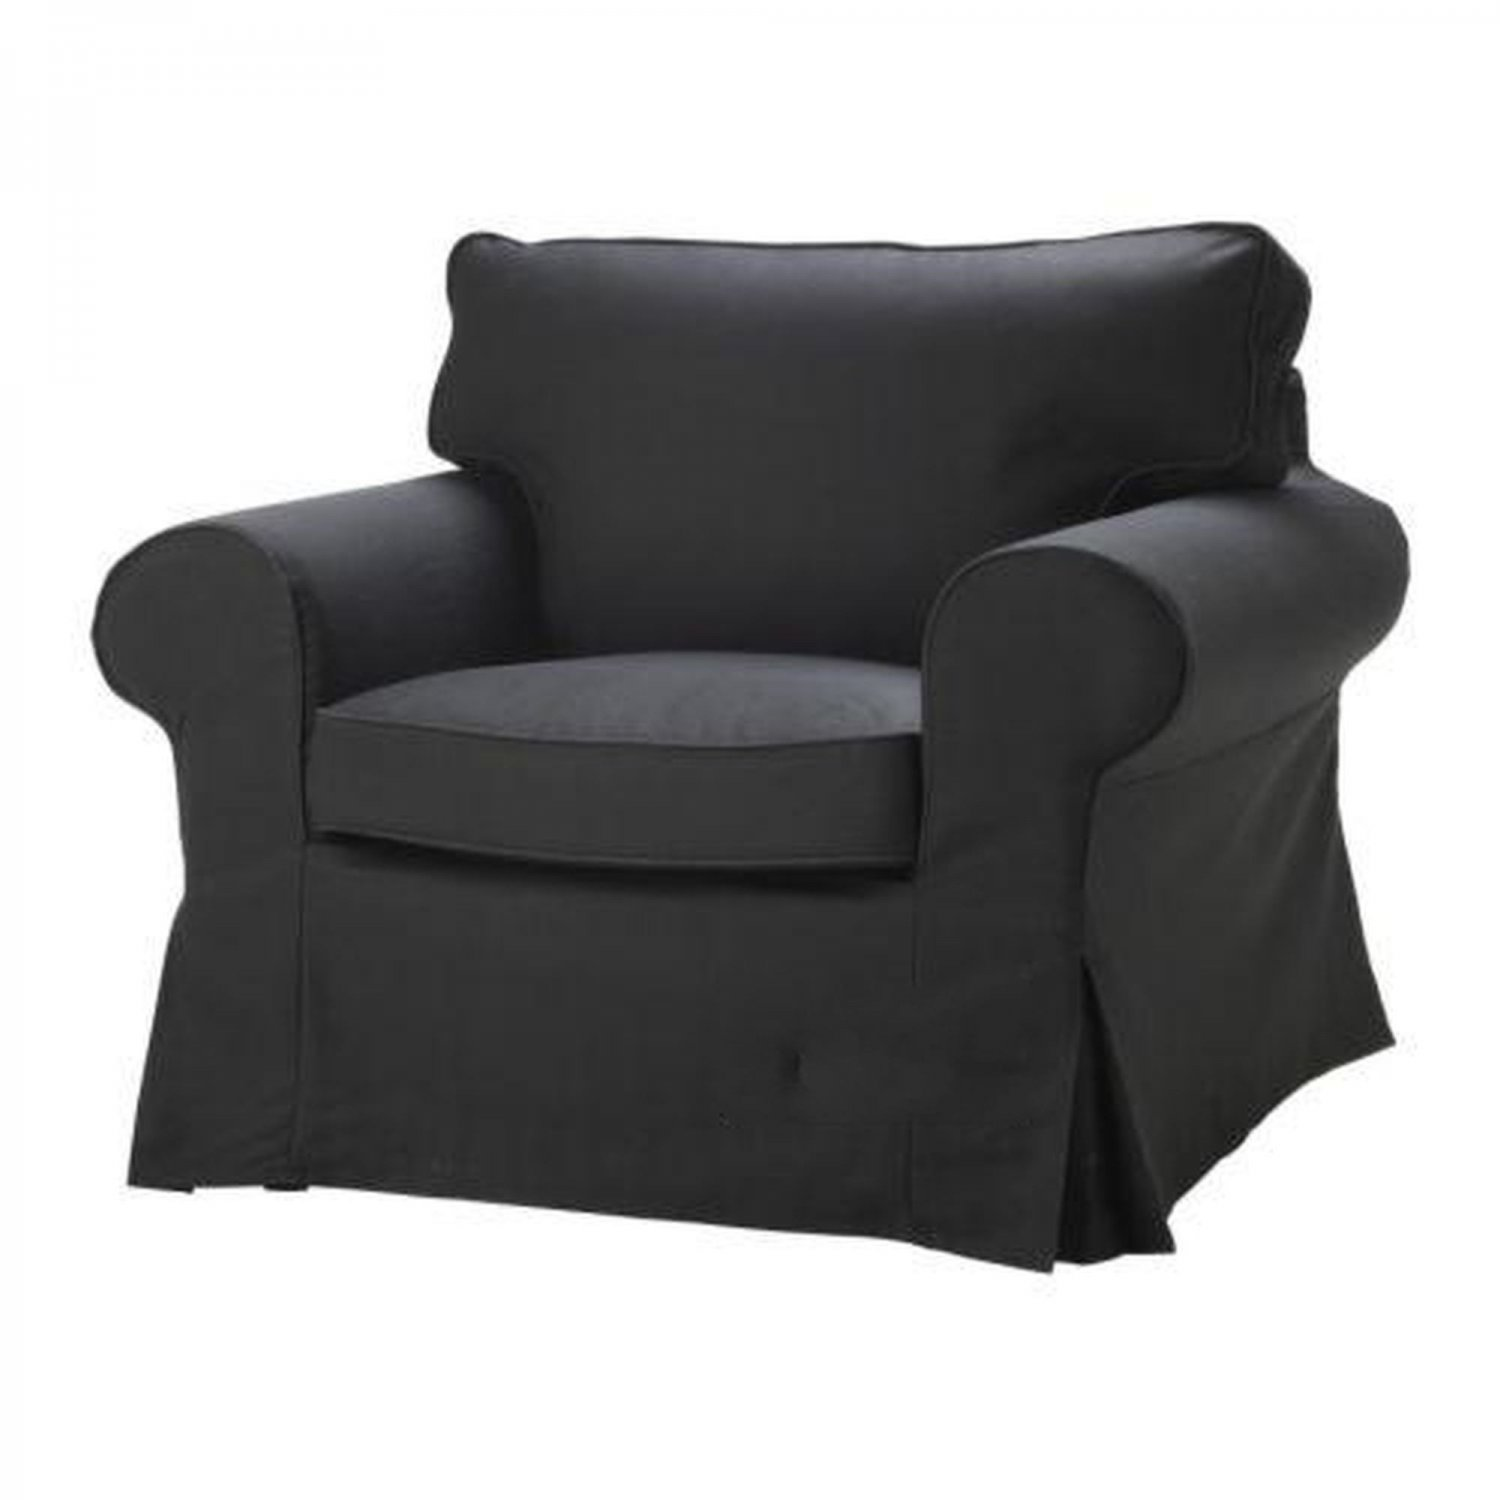 ikea ektorp armchair slipcover idemo black chair cover cotton. Black Bedroom Furniture Sets. Home Design Ideas